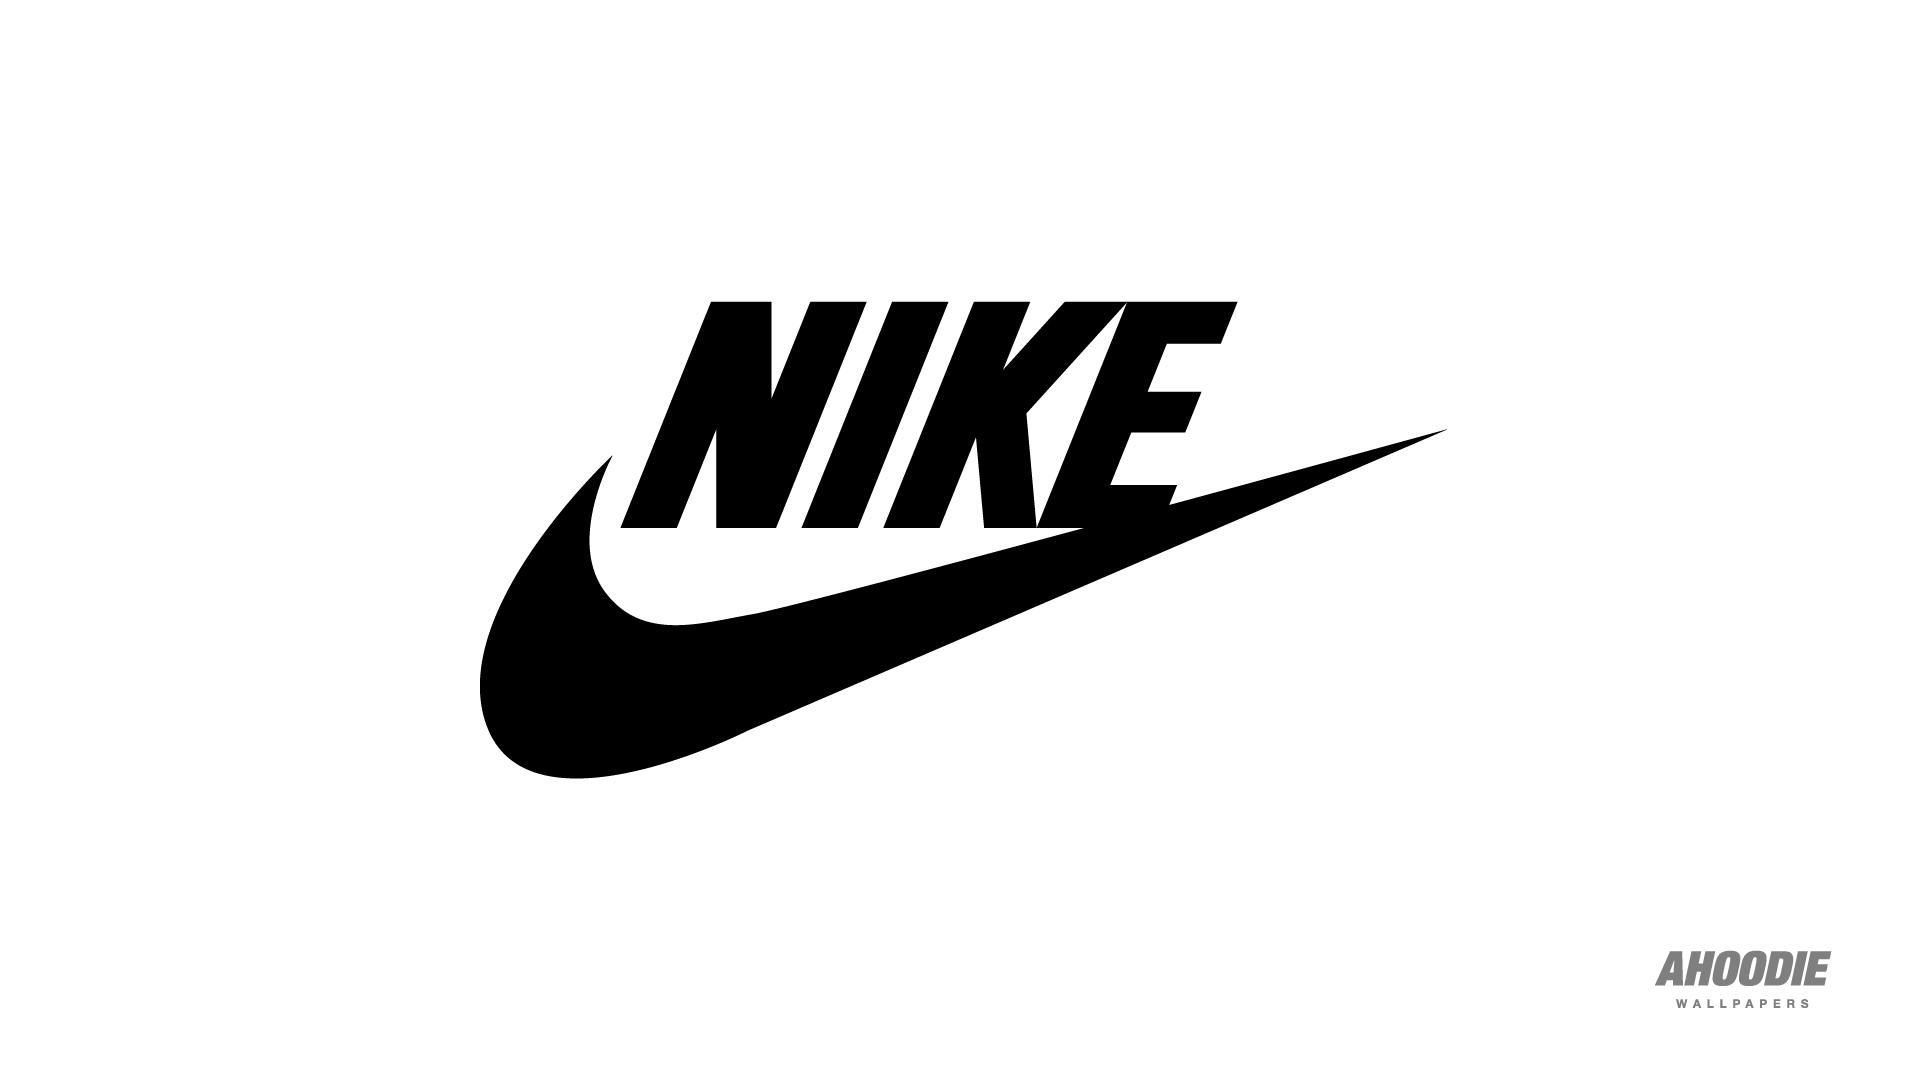 How much is the Nike logo worth?